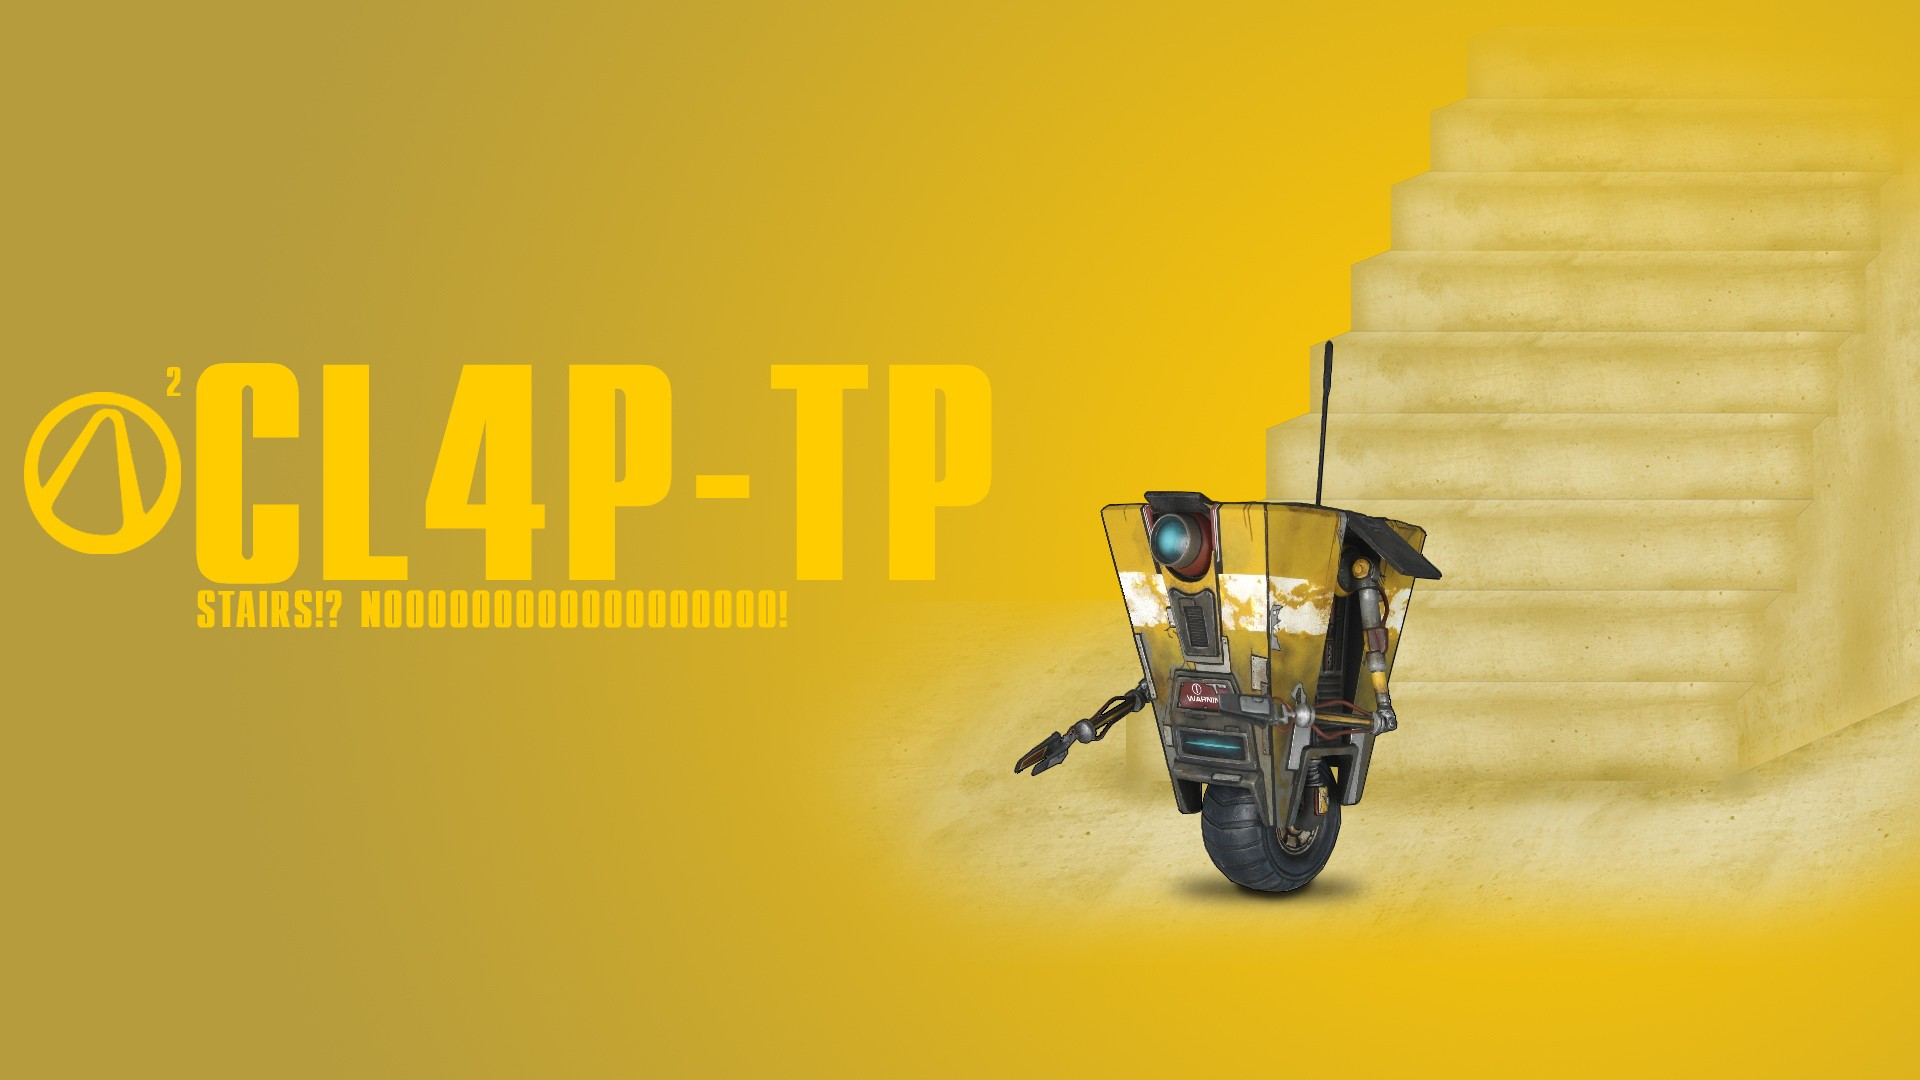 Video games Borderlands claptrap wallpaper | 1920x1080 ...